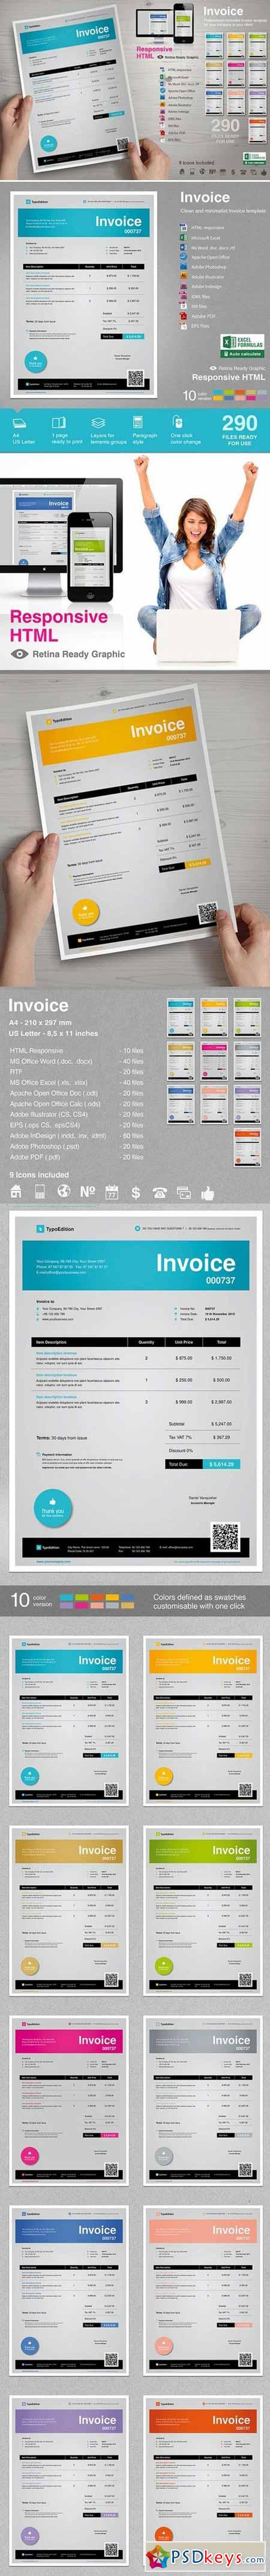 Invoice Stationery Template 407743